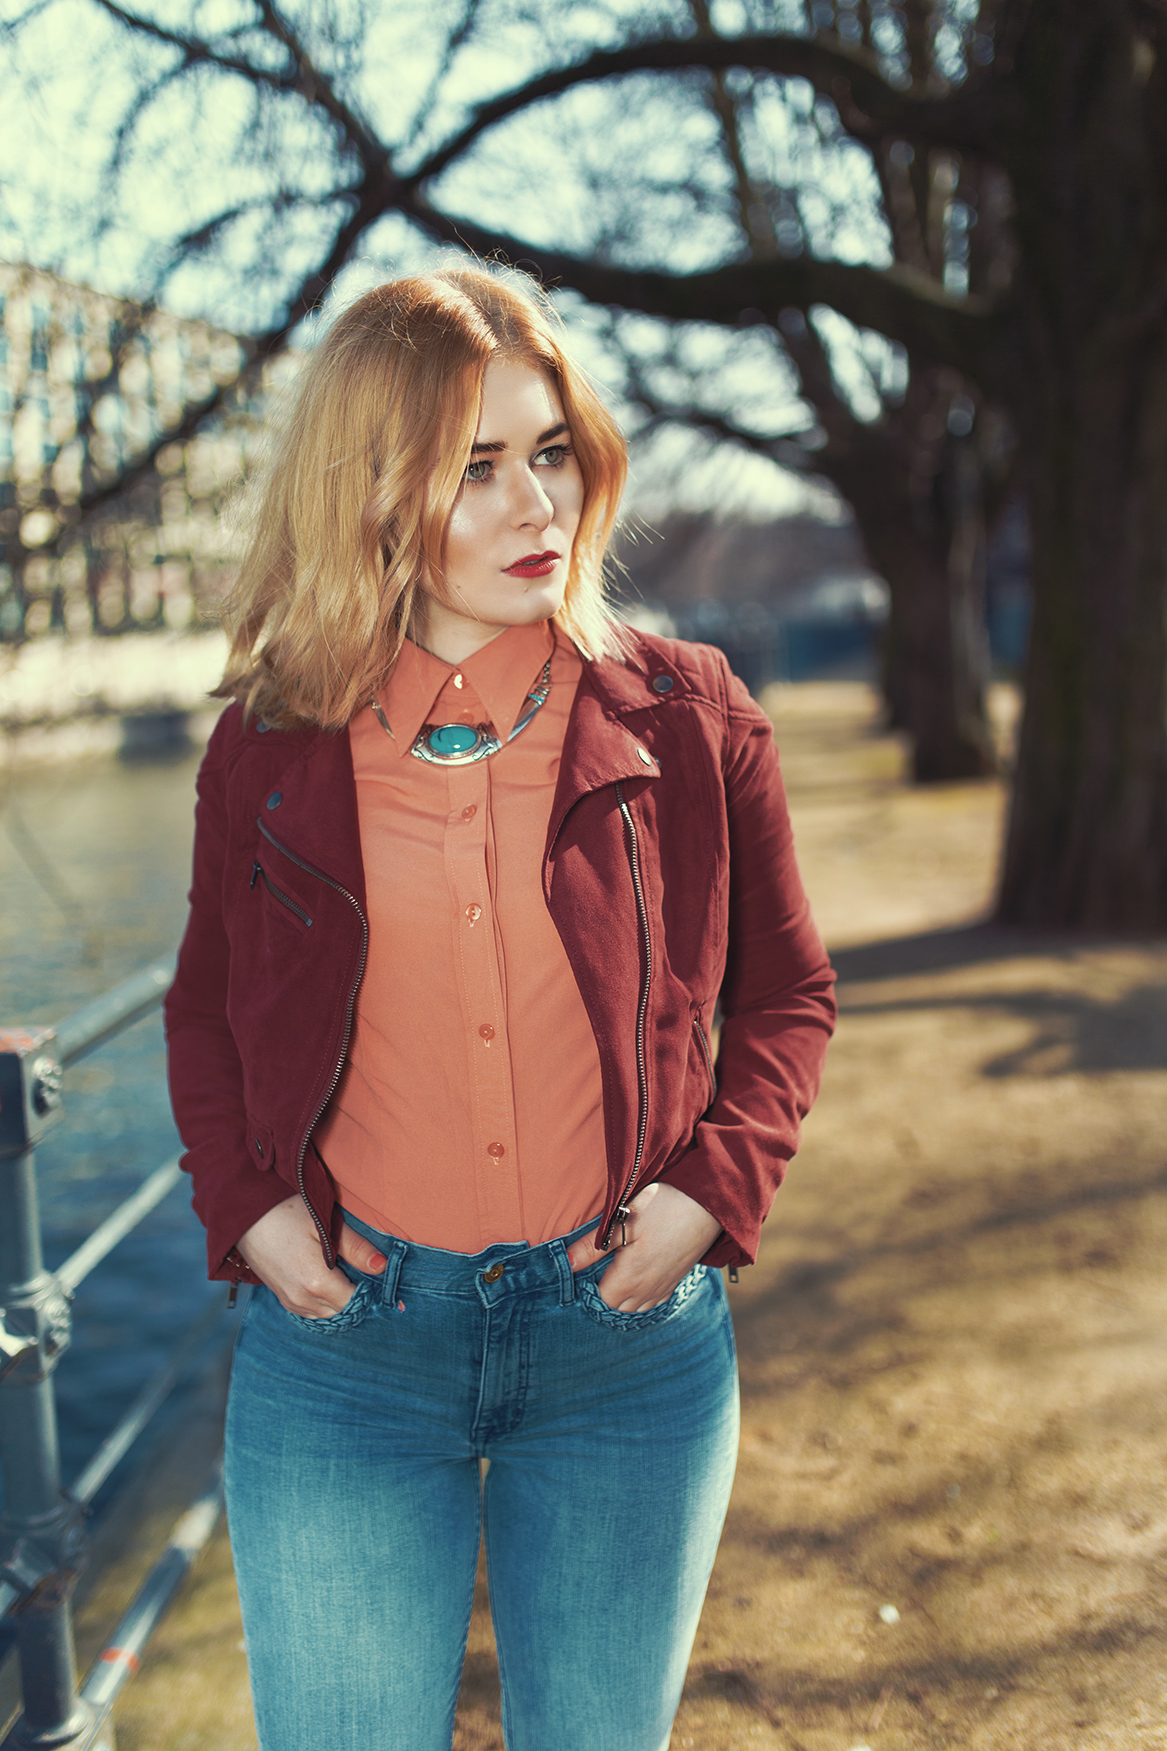 herbst-outfit-jeans-weinrote-kurzjacke